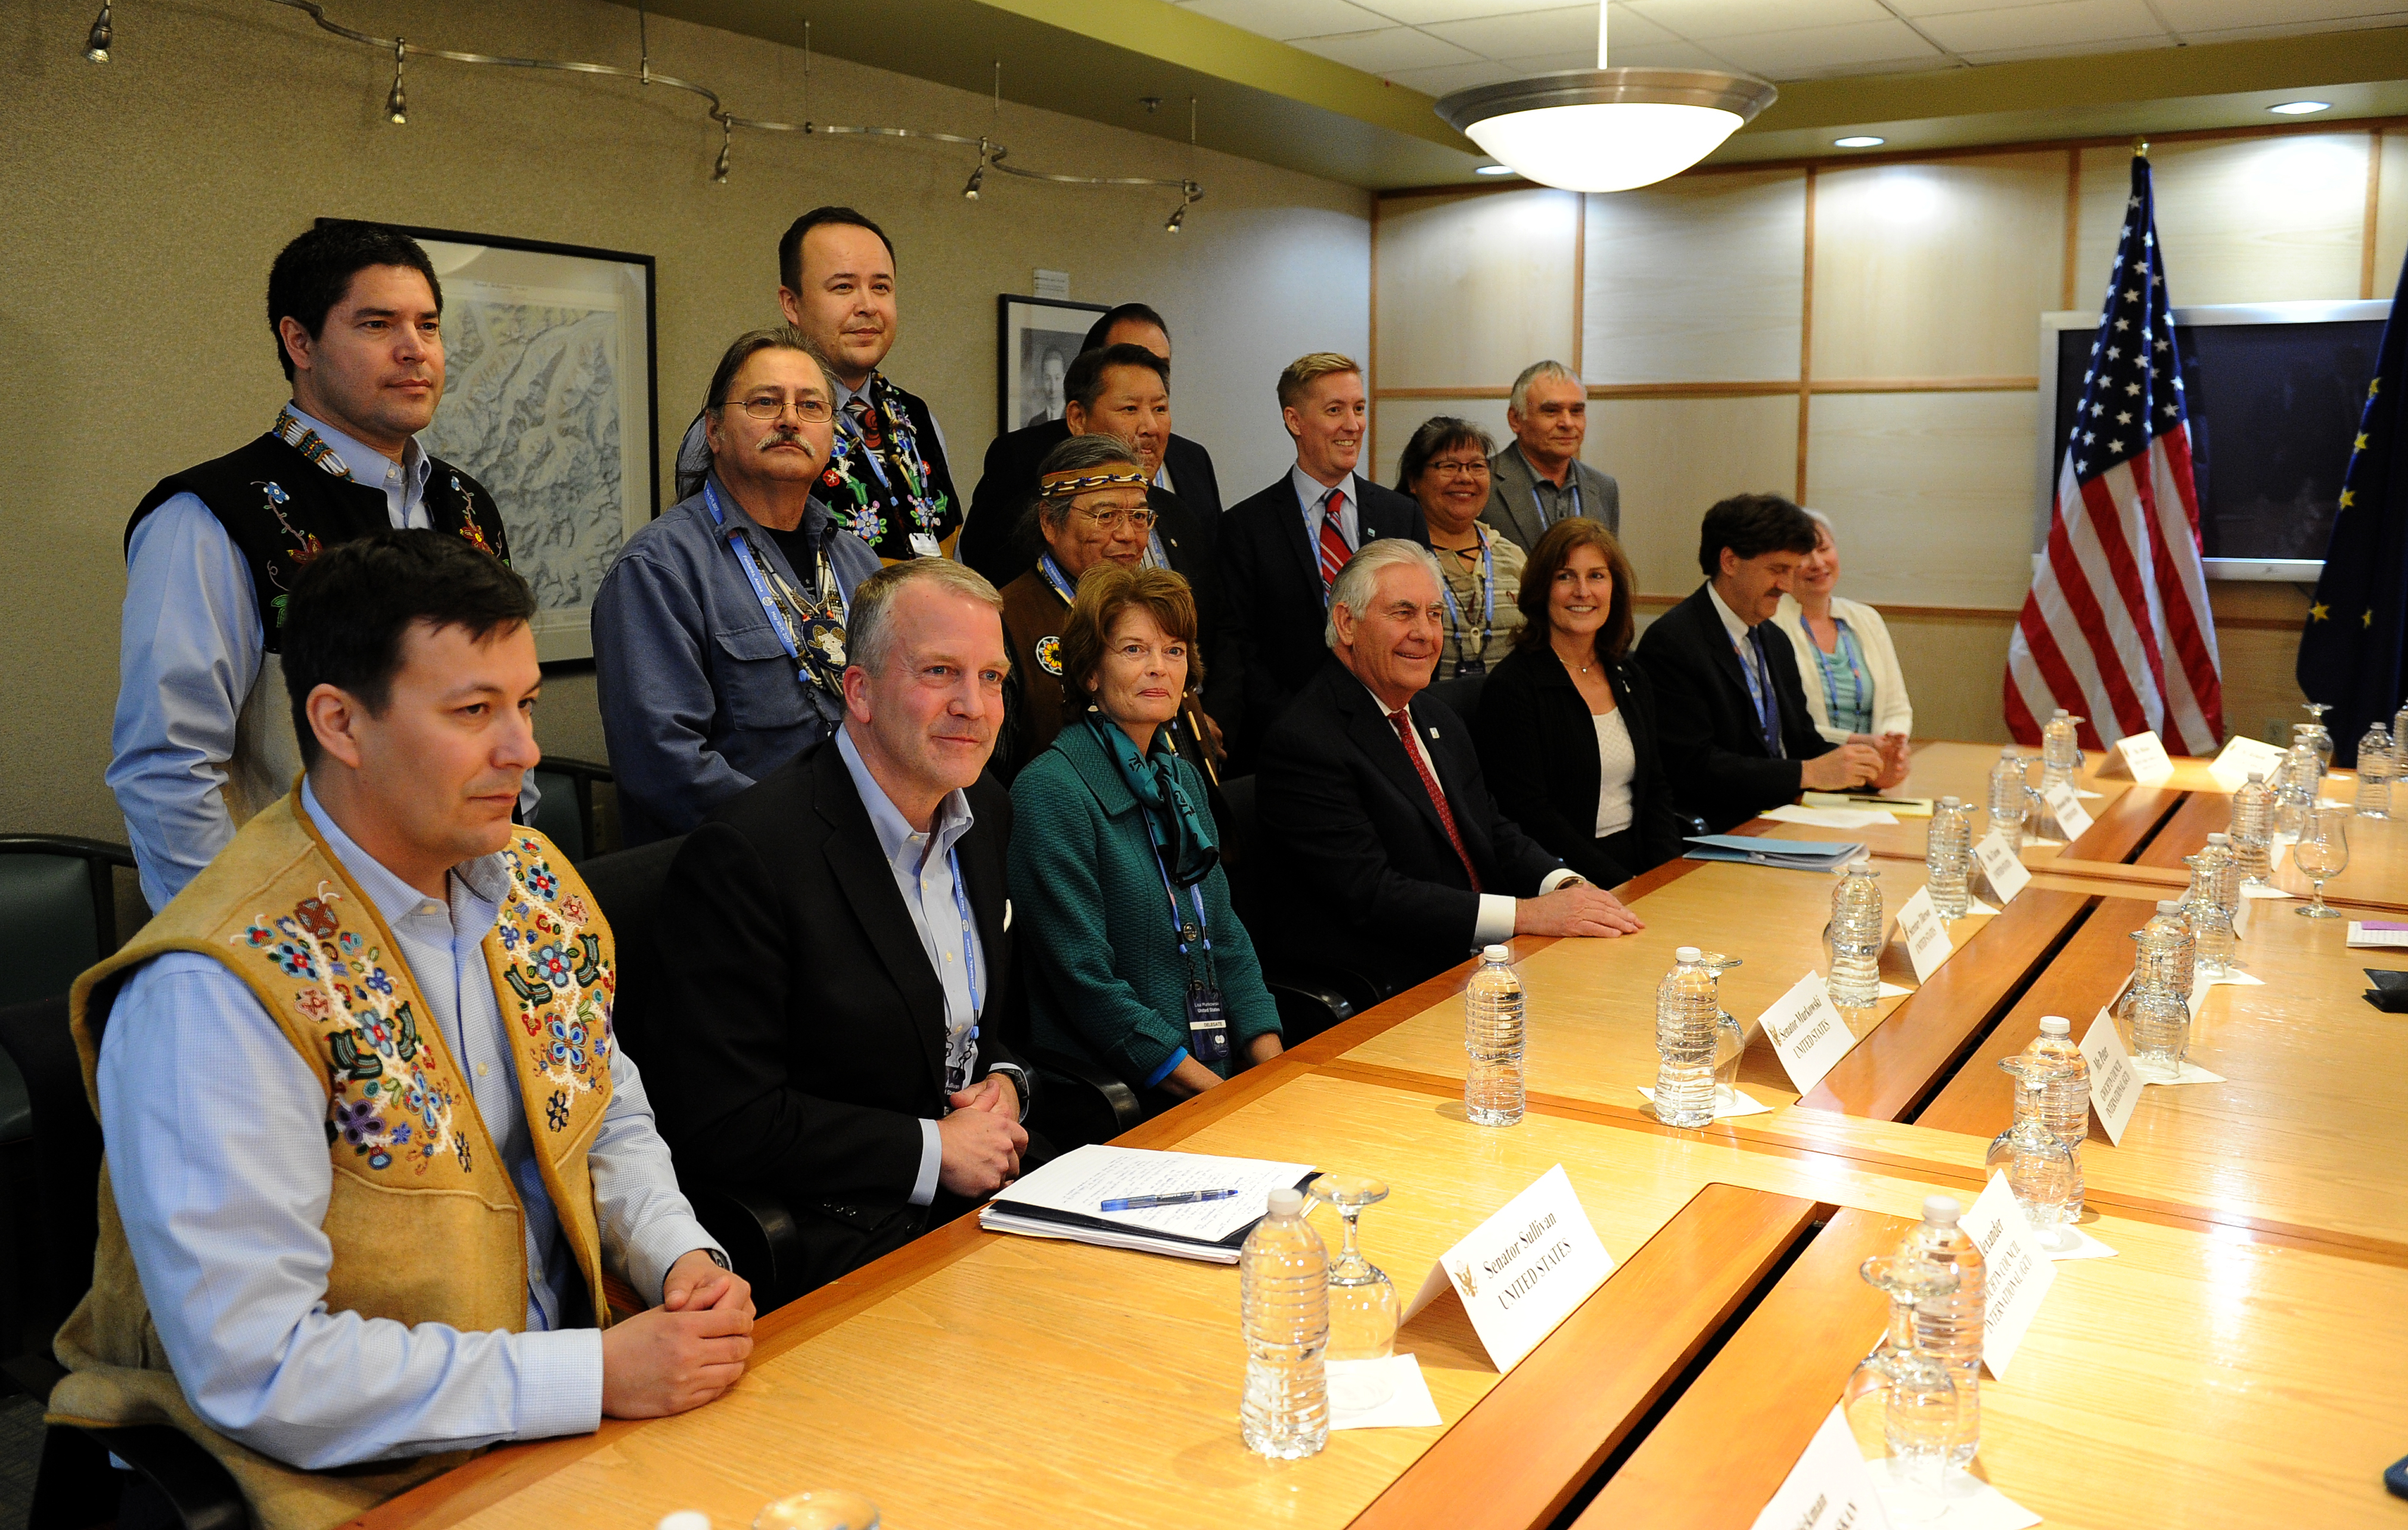 US chairmanship may be over, but Alaskans will continue to keep the US active in the Arctic